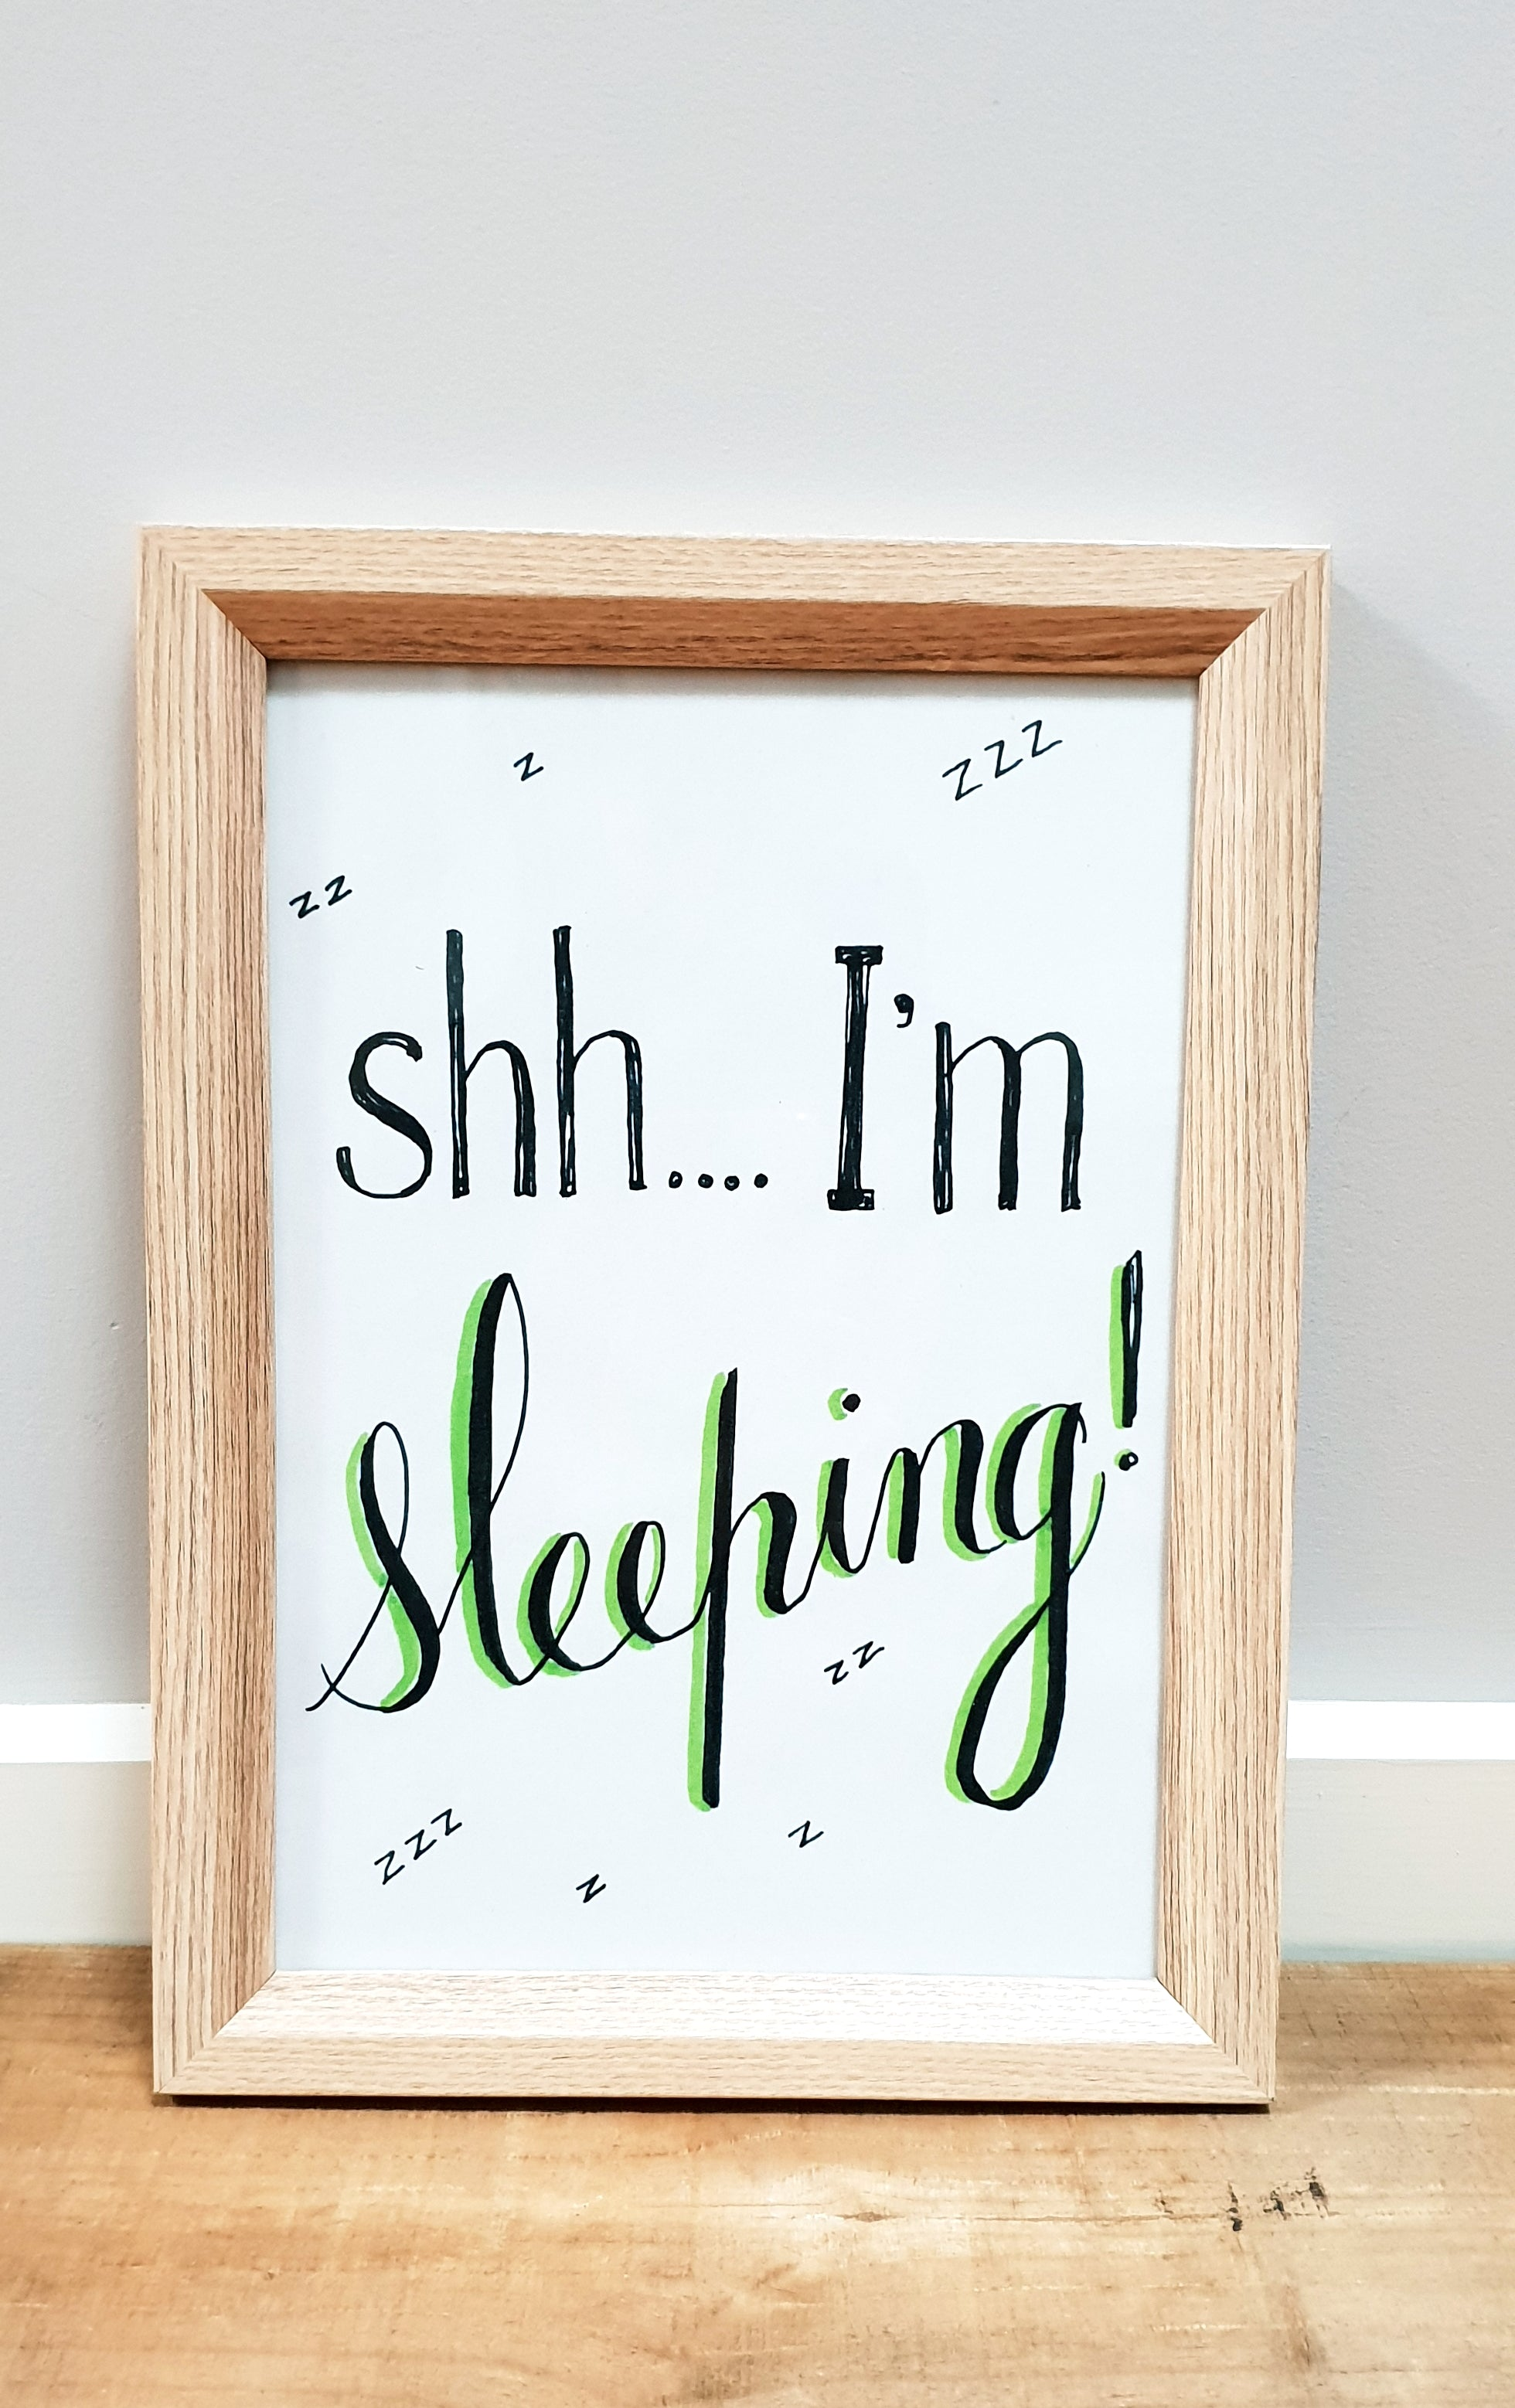 "Nursery decor / digital download / print at home ""Shh, I'm Sleeping!"""